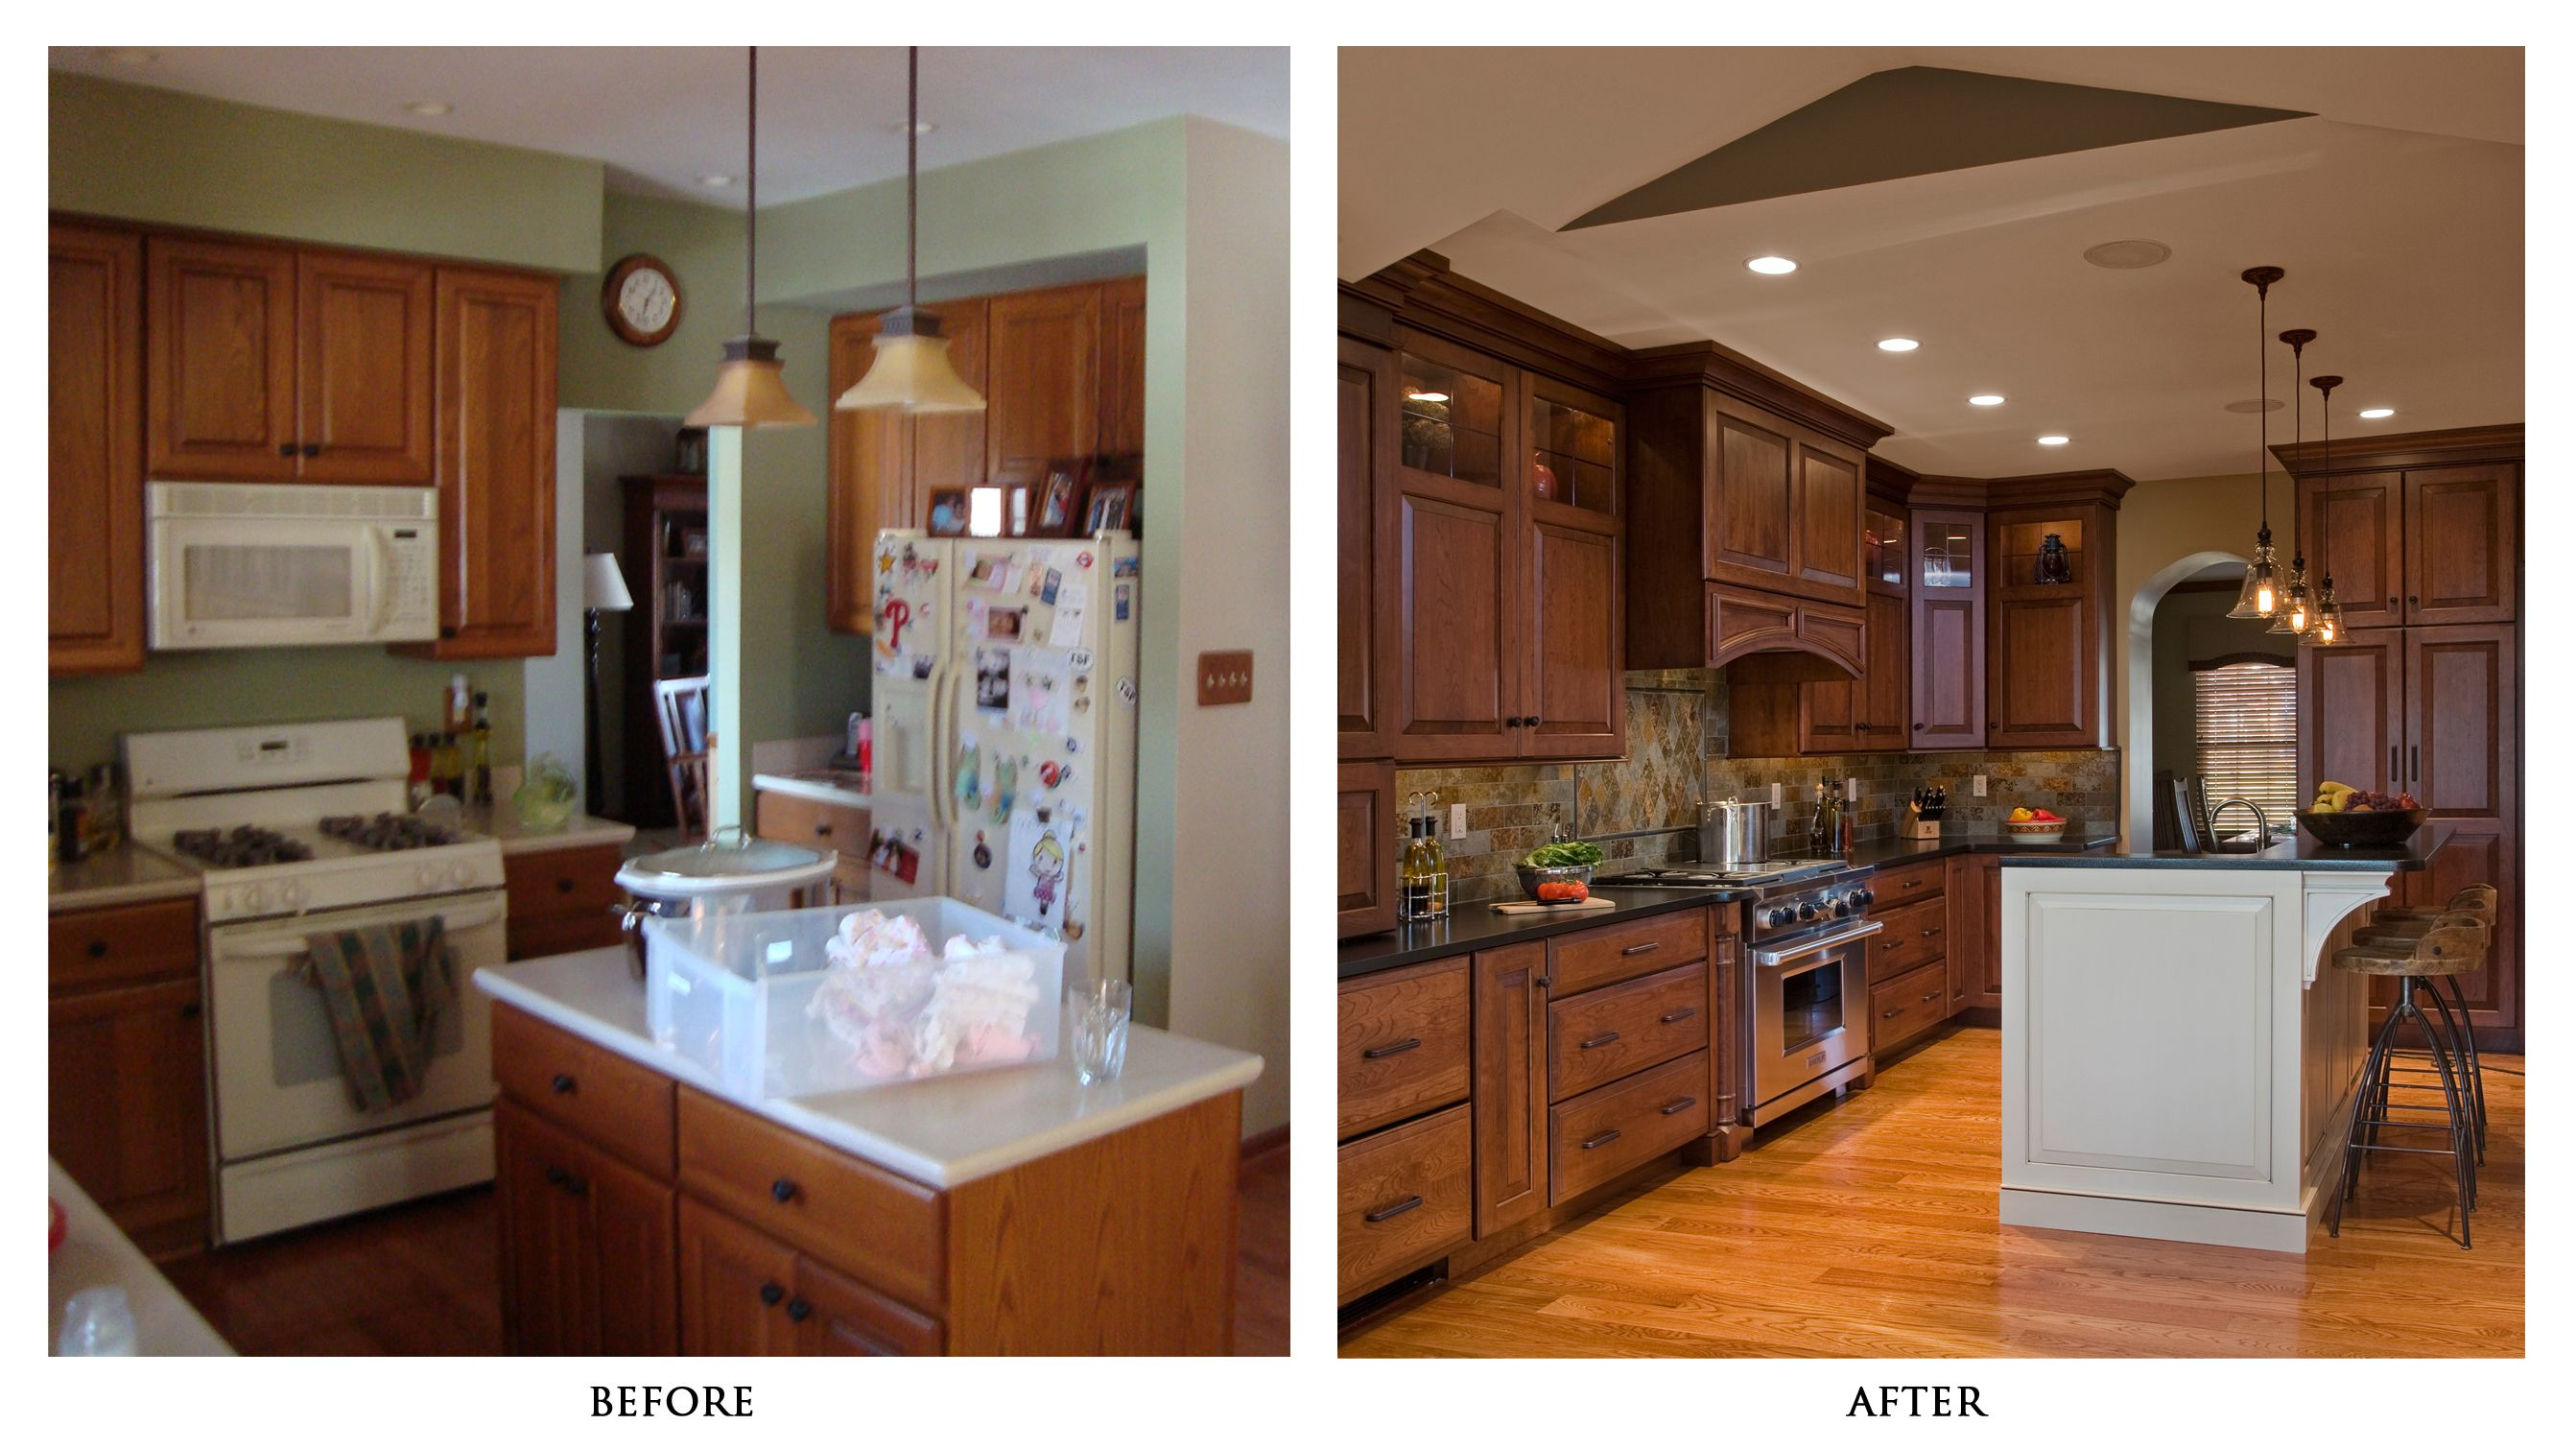 Kitchen Island Renovations kitchen remodels before and after photos | kitchen | pinterest